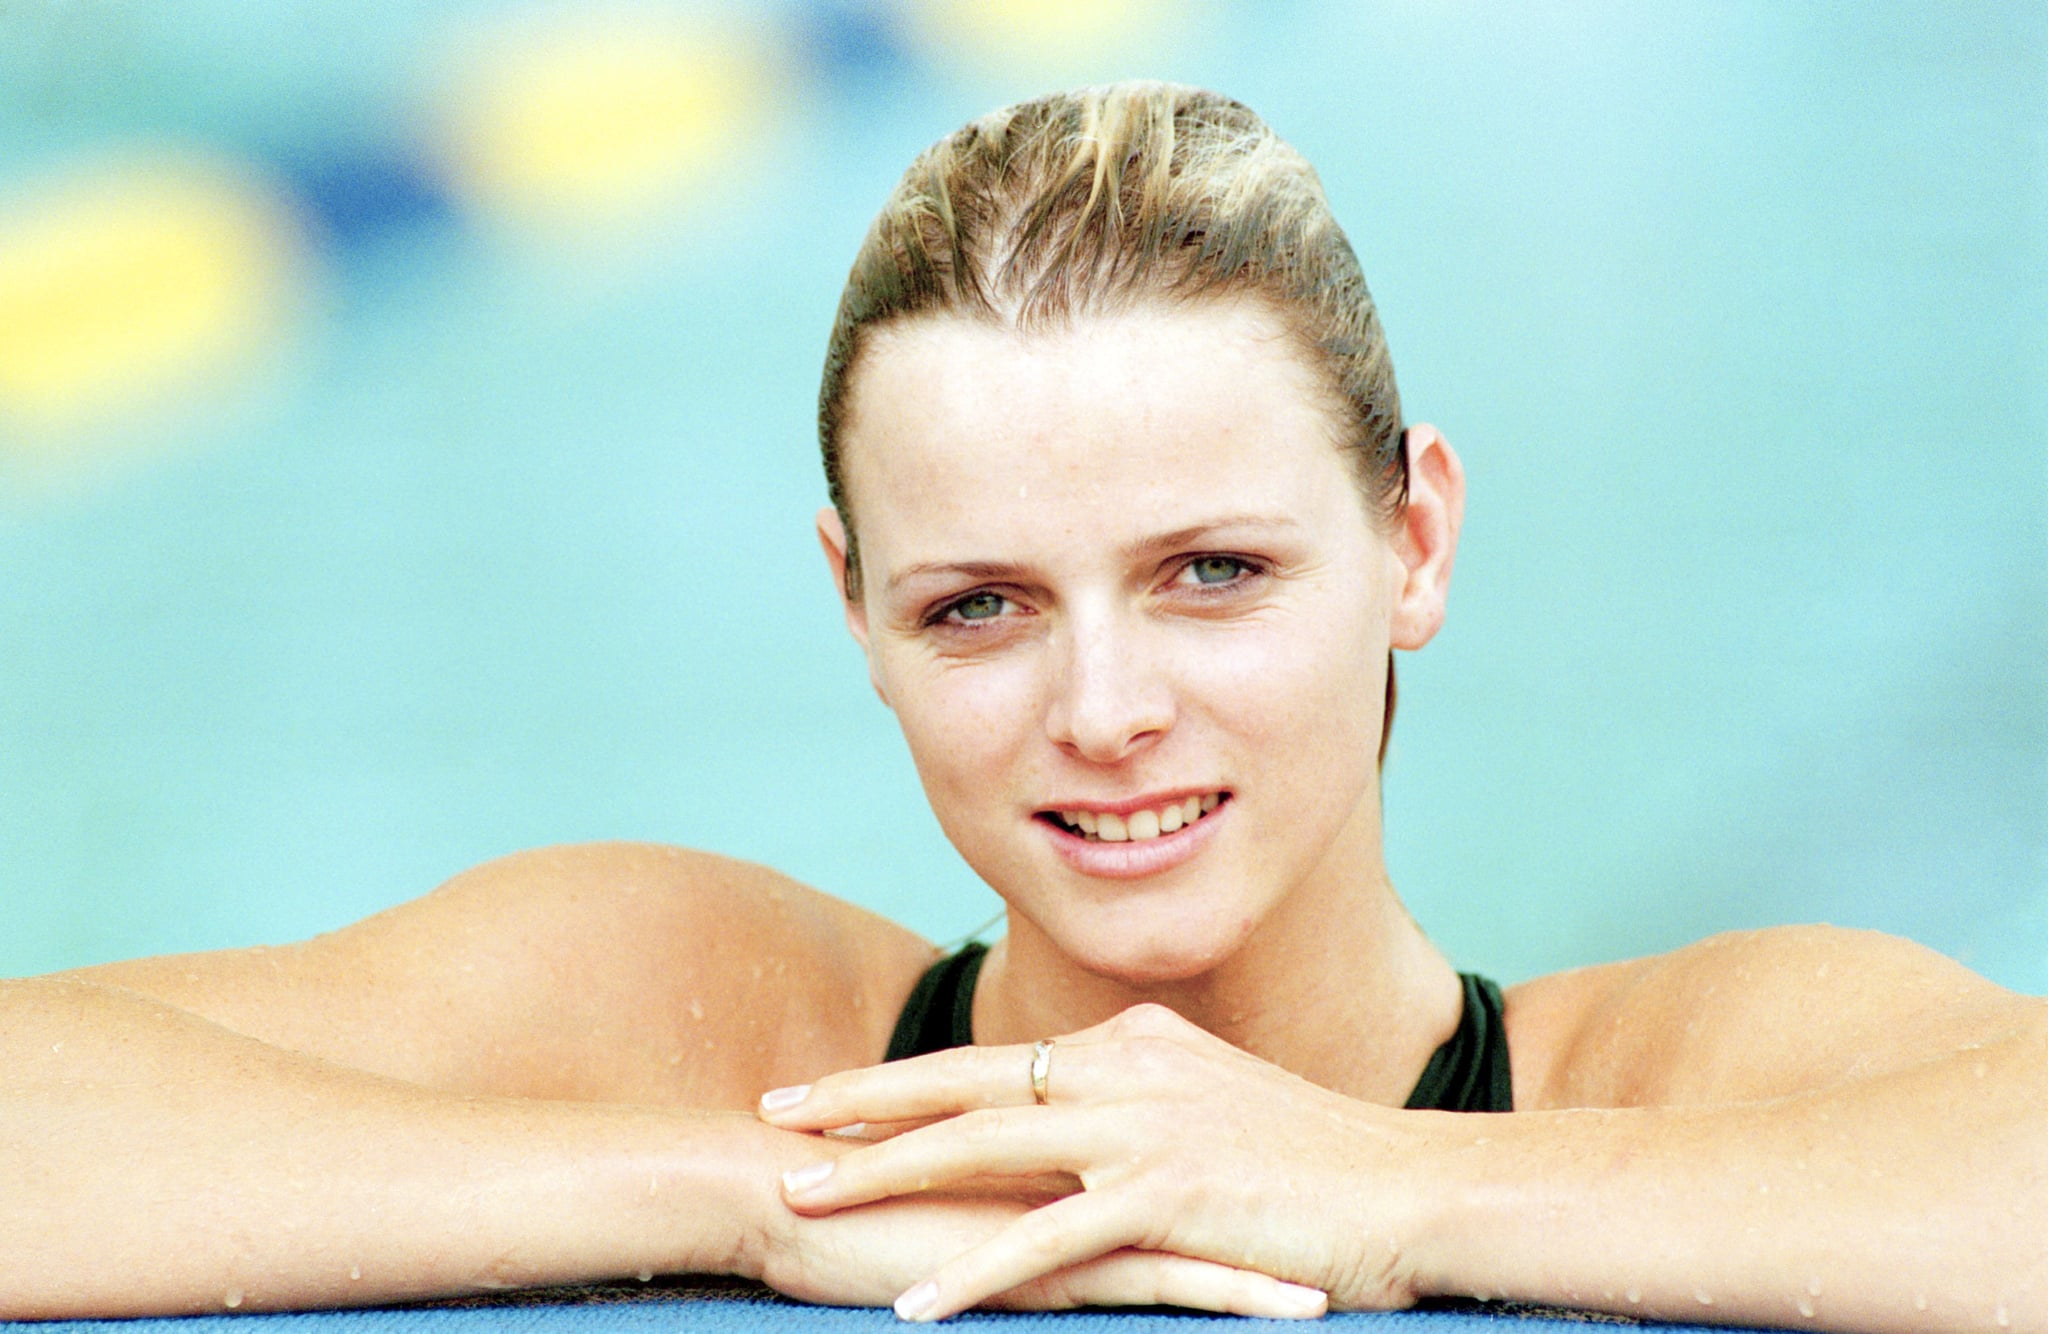 The Olympic swimmer posed at the Commonwealth Games in 1998, a couple of years before she met her prince.